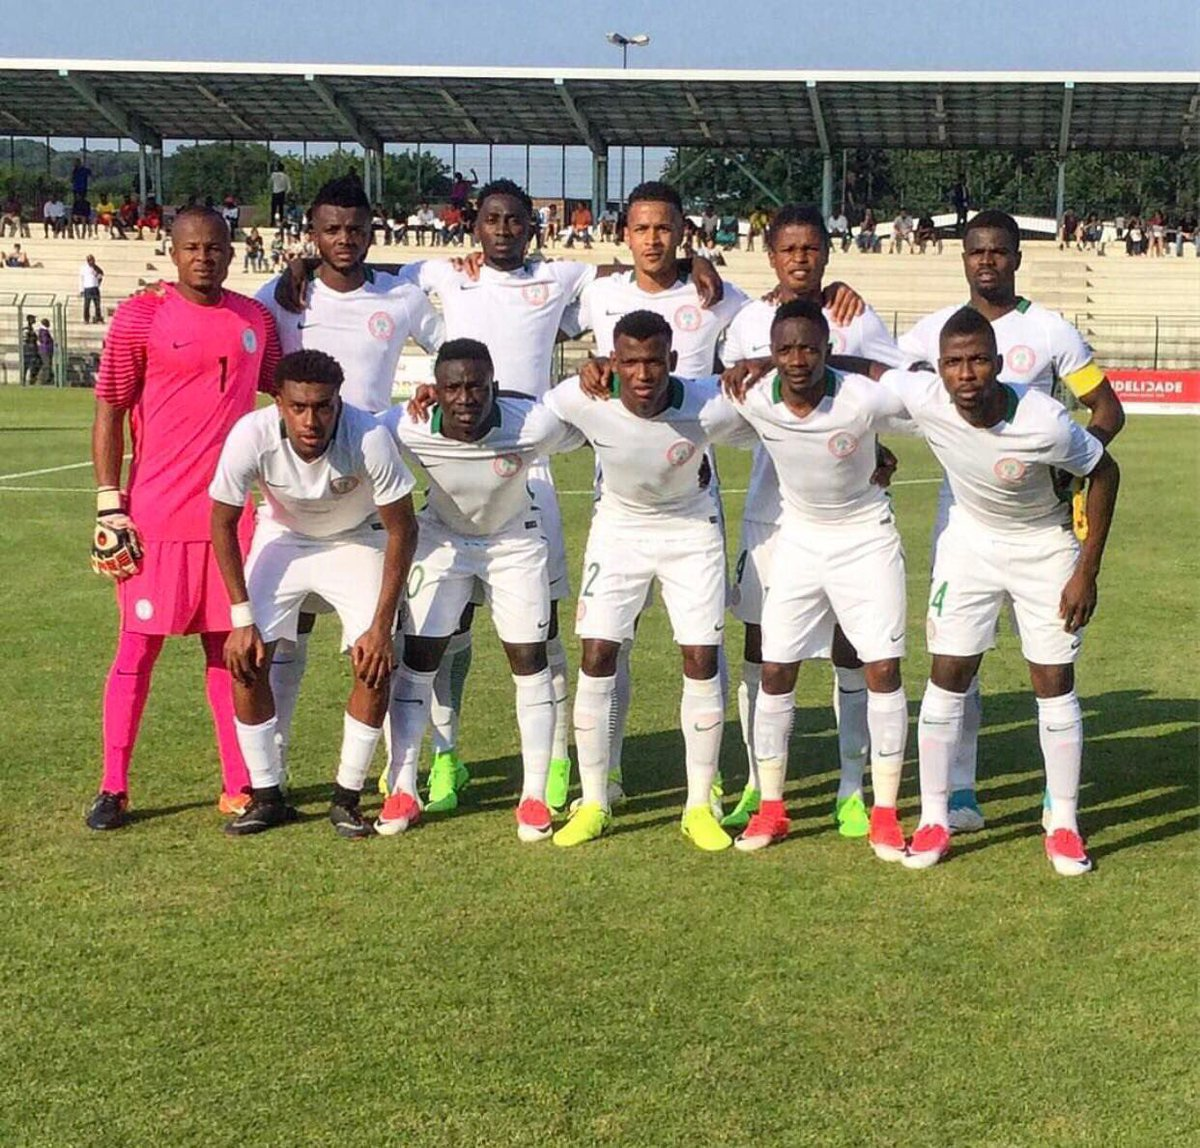 AFCON Qualifier: 21 Eagles In Uyo Camp; Echiejile, Omeruo, Musa Expected